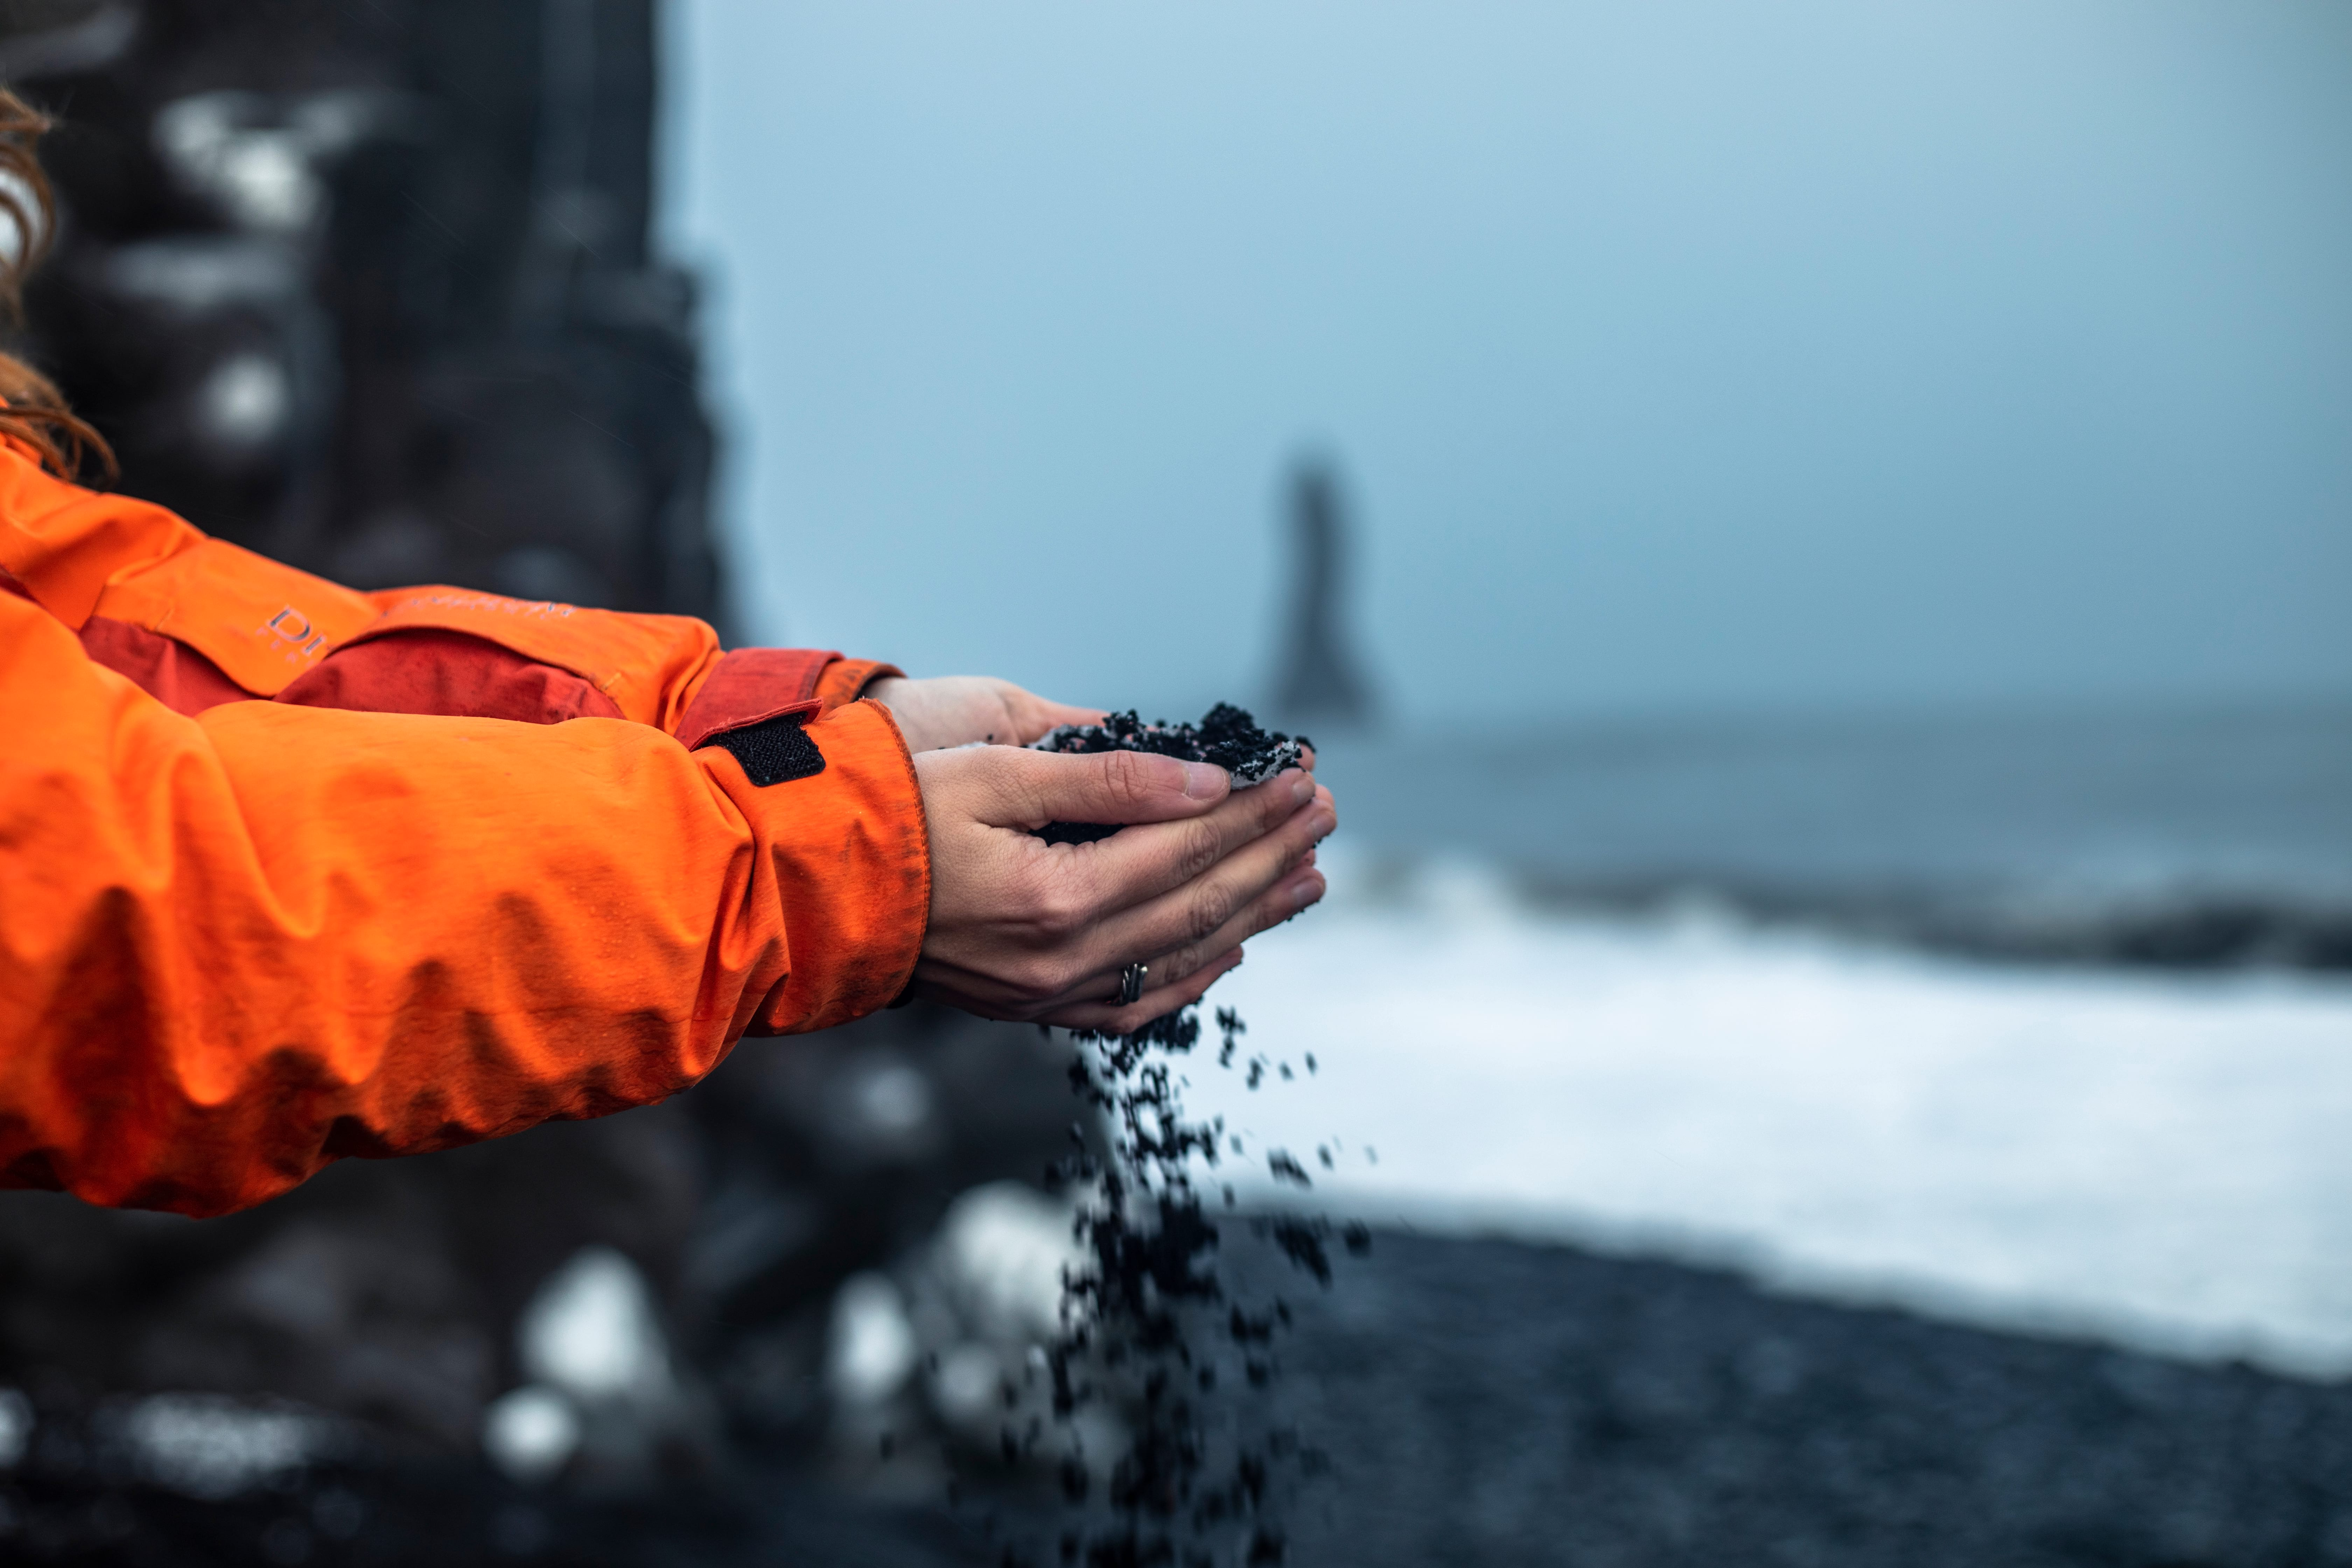 Reynisfjara, the most famous Black Sand Beach in Iceland